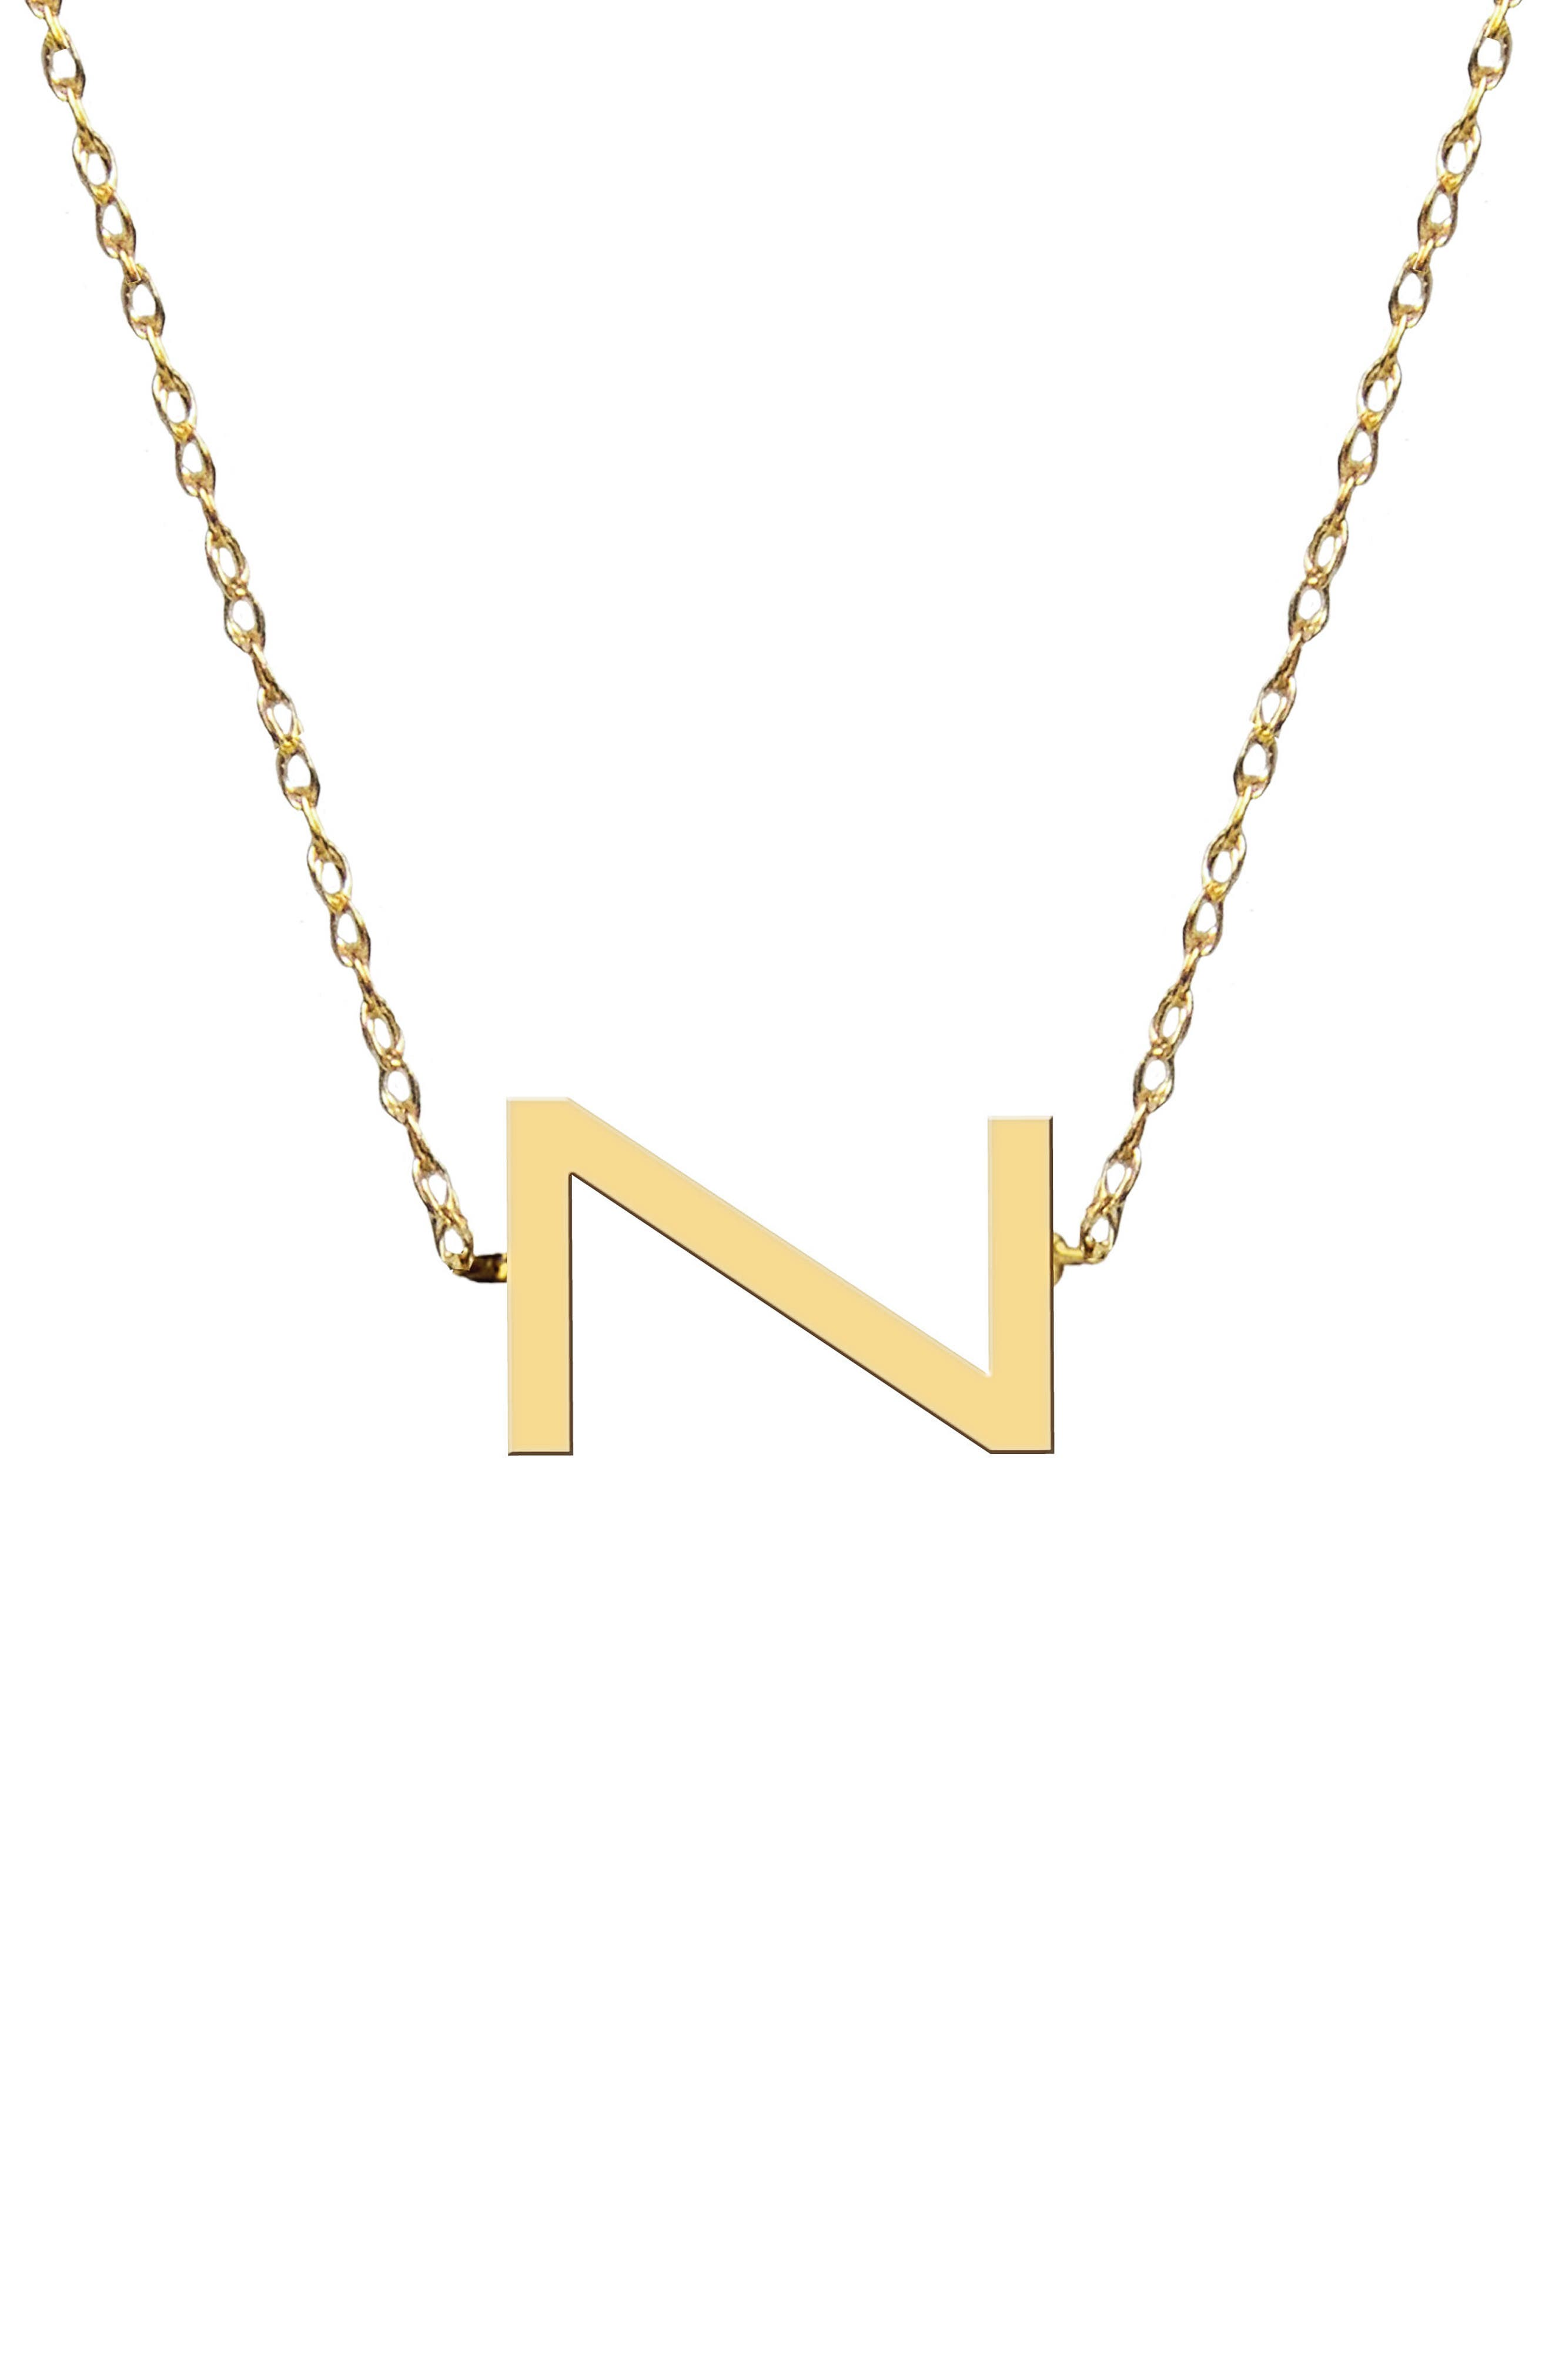 Alternate Image 1 Selected - Jane Basch Designs Sideways Block Initial Pendant Necklace (Nordstrom Exclusive)